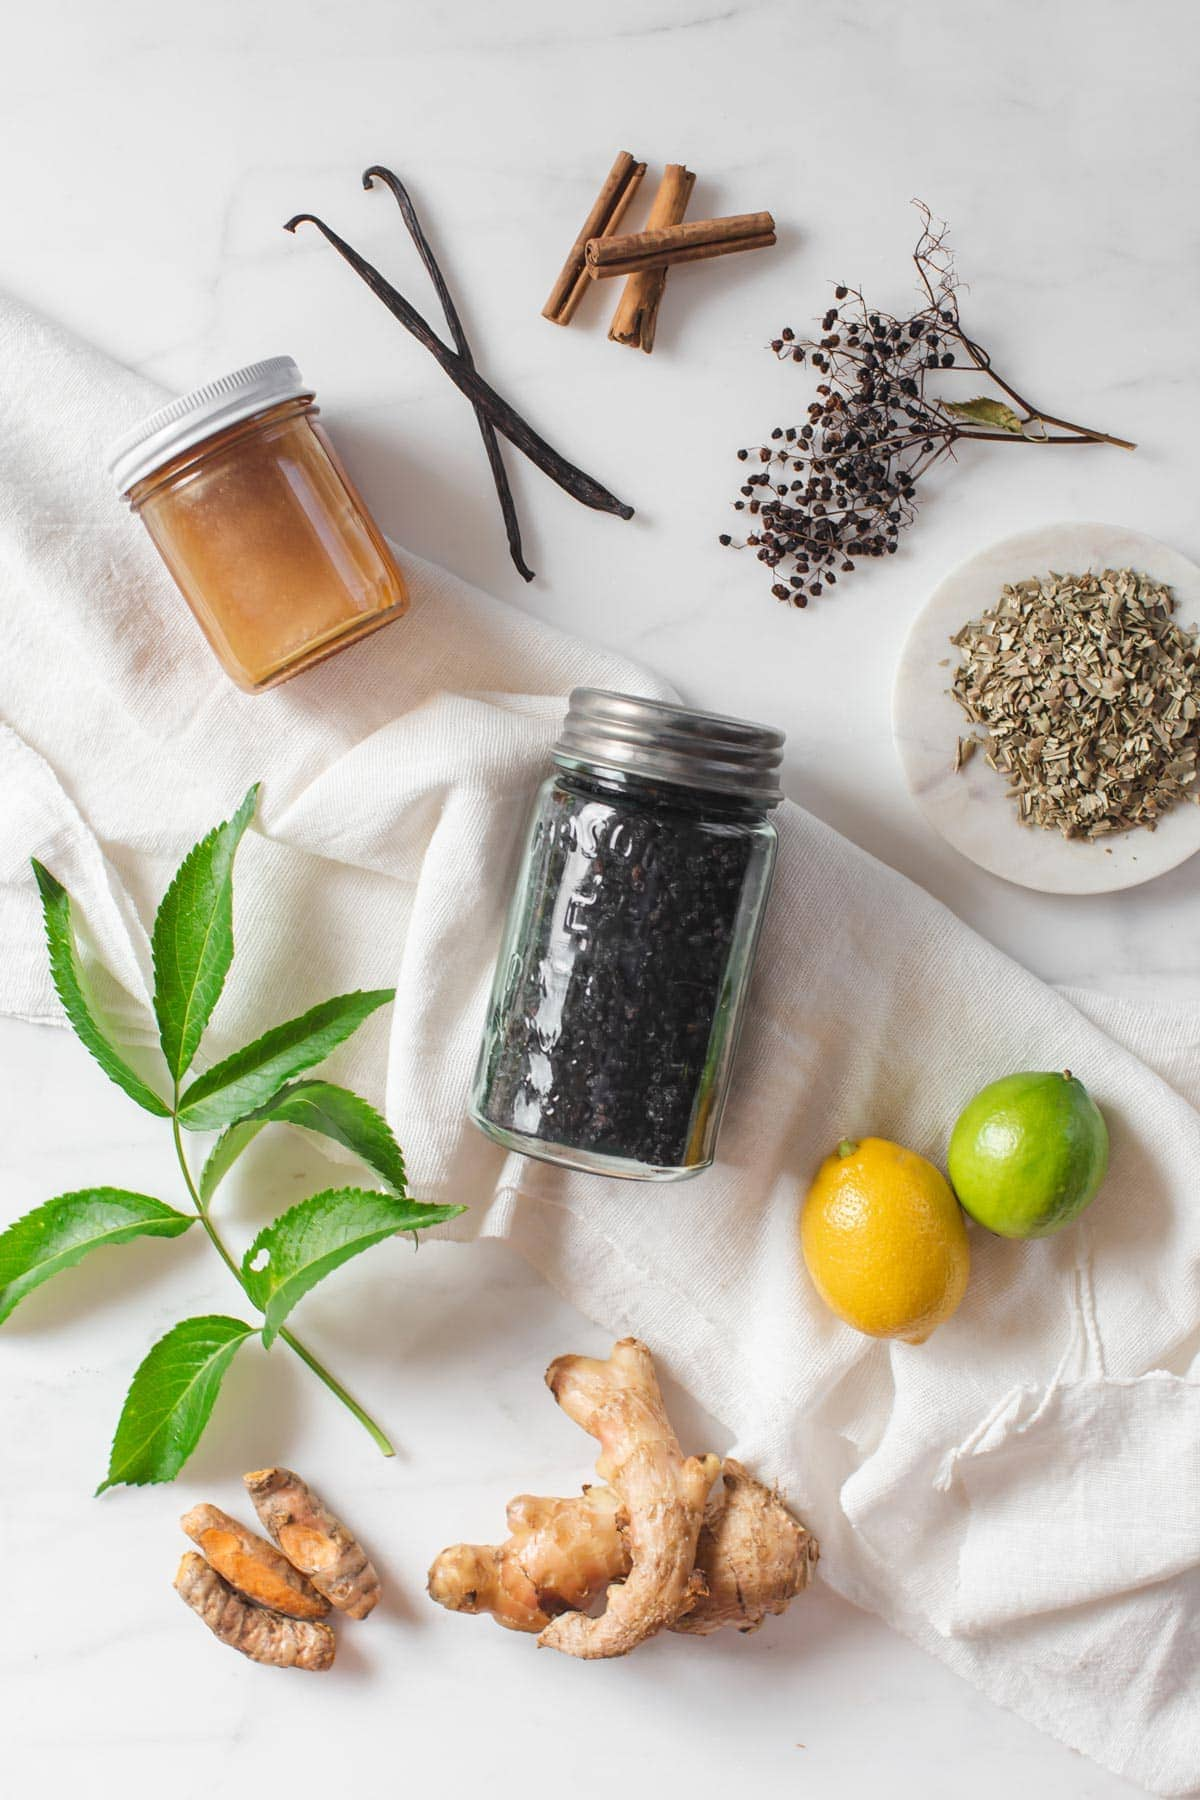 Flat lay of ingredients used to make a flavoursome herbal syrup - including dried elderberries, Manuka honey, spices and citrus fruits.